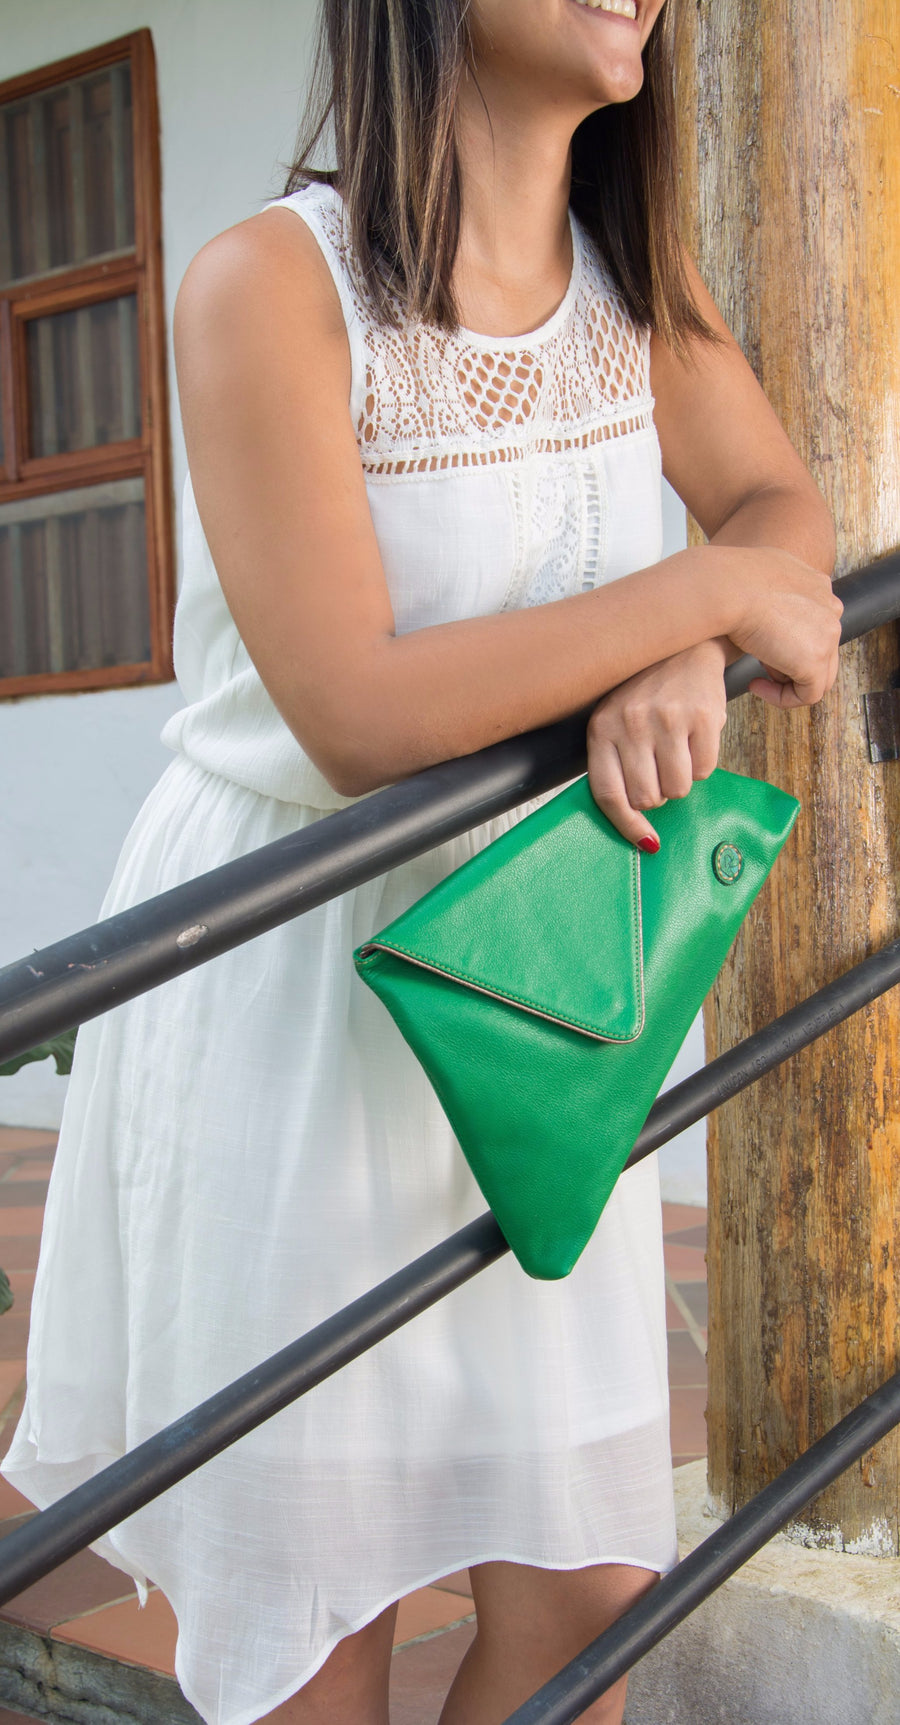 Elegancia, Emerald Green Envelope Clutch, Trapezoid Contour, 100% Leather - Handbag Charms  - Handbag TheMakerWorld TheMakerWorld